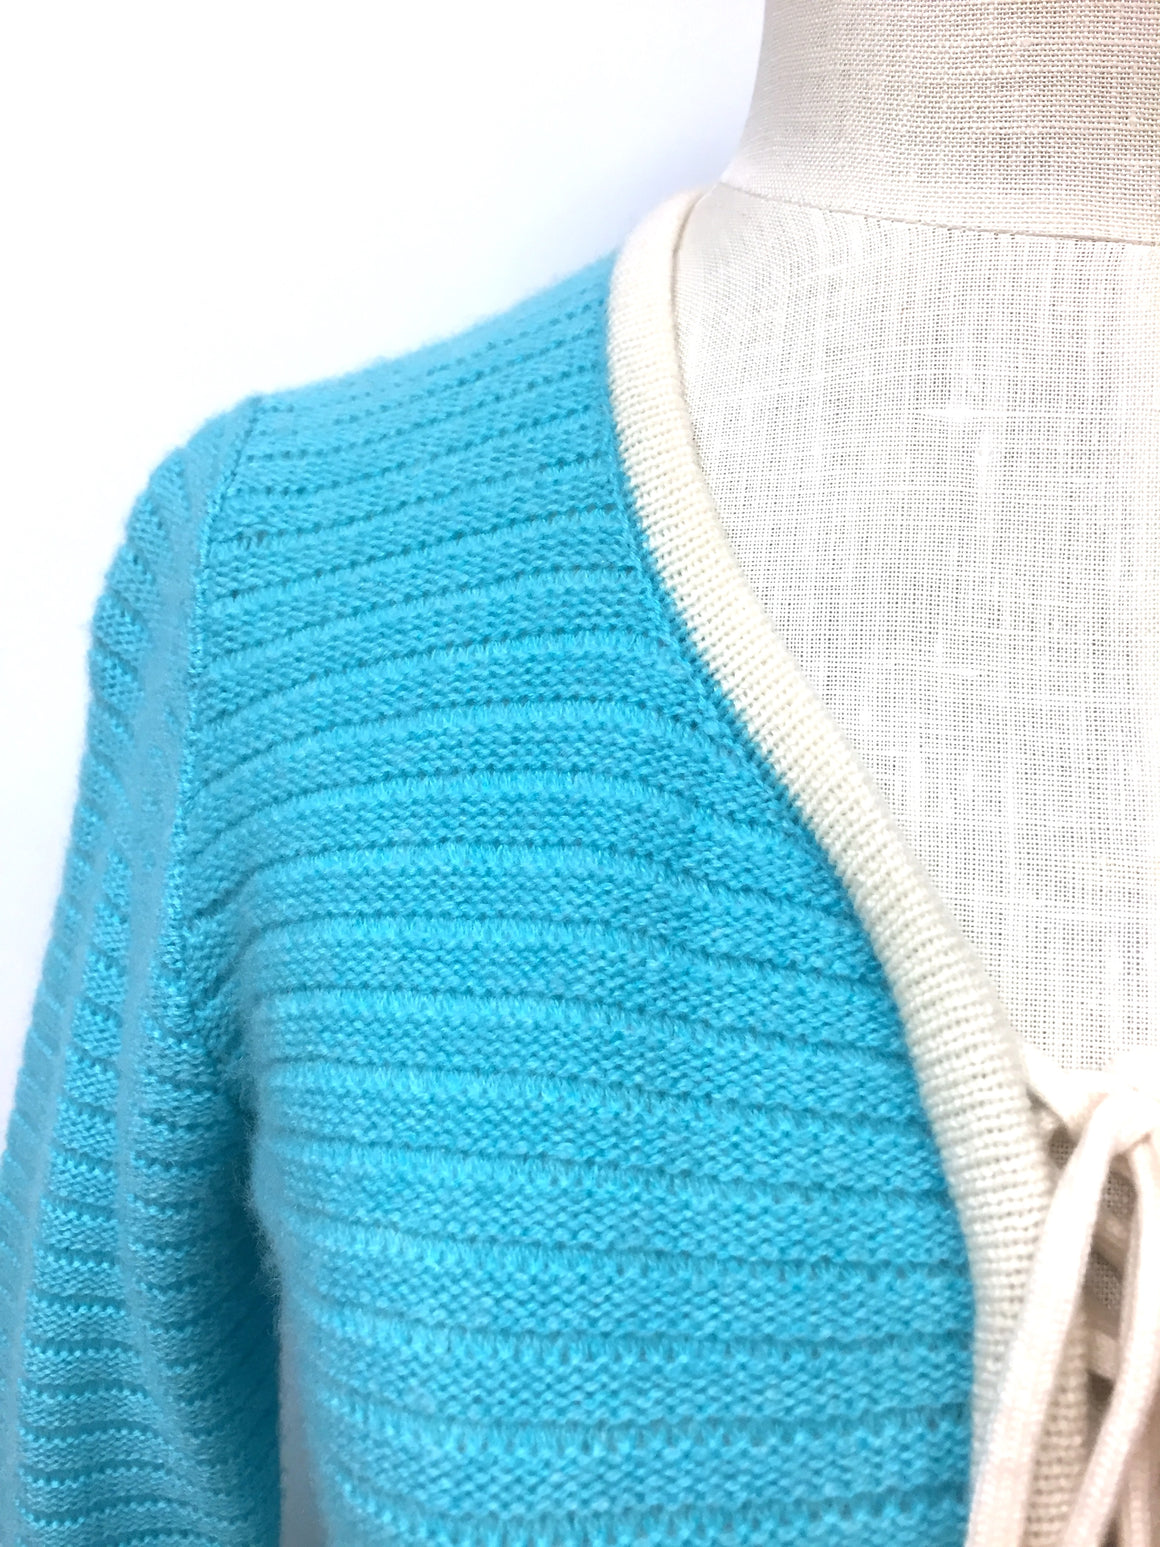 GINNY H Turquoise Cashmere Ivory Trim Lace-Up Neckline Tunic Sweater Sz S/M